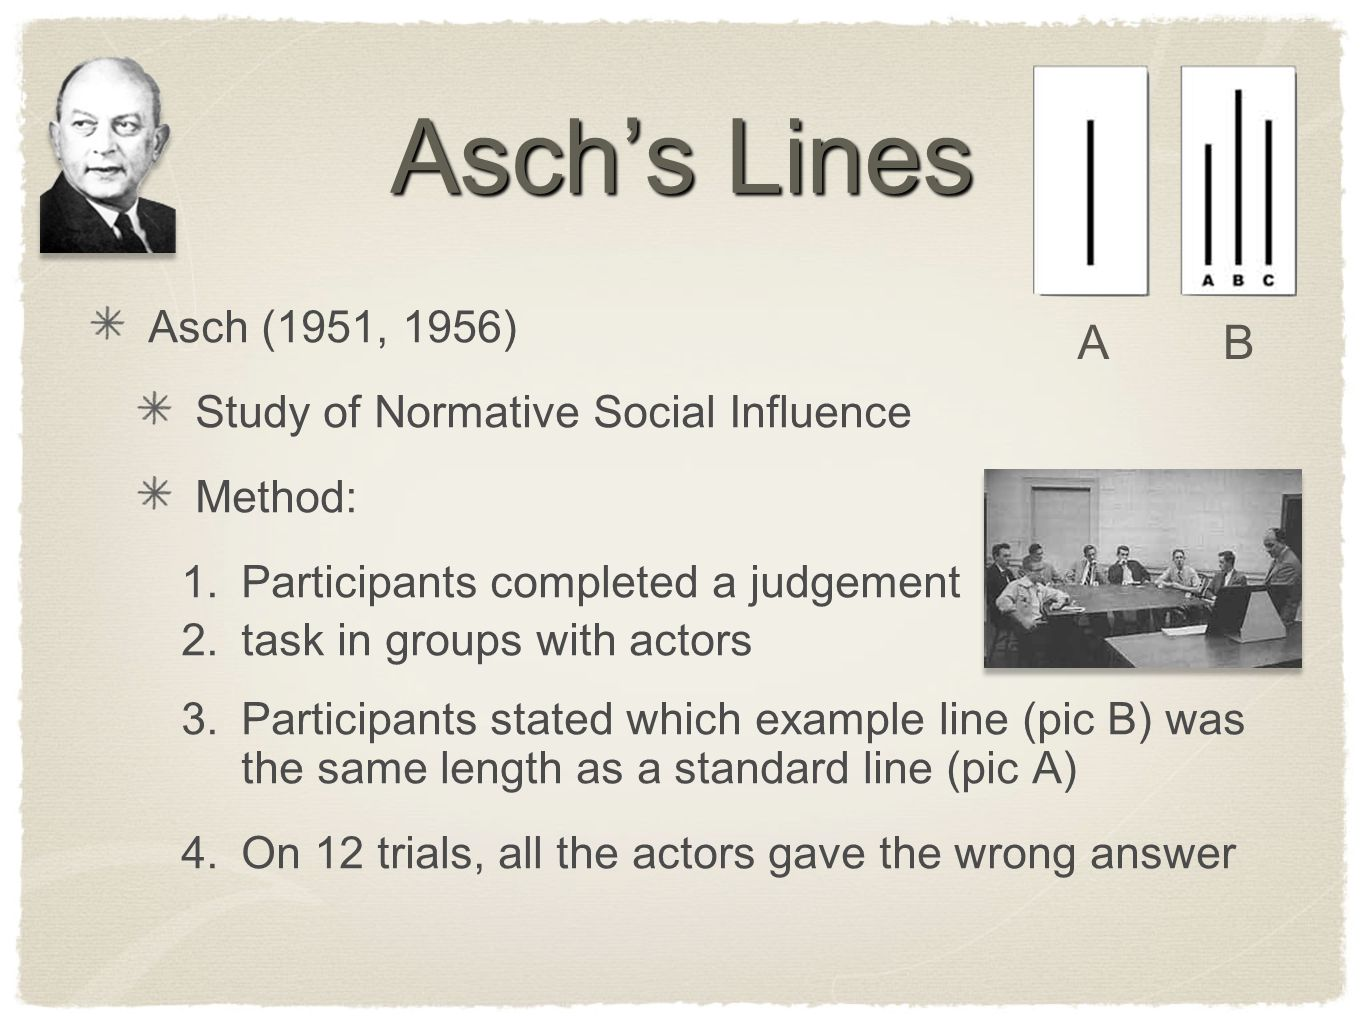 Asch's Lines Asch (1951, 1956) Study of Normative Social Influence Method: 1. Participants completed a judgement 2. task in groups with actors 3. Part